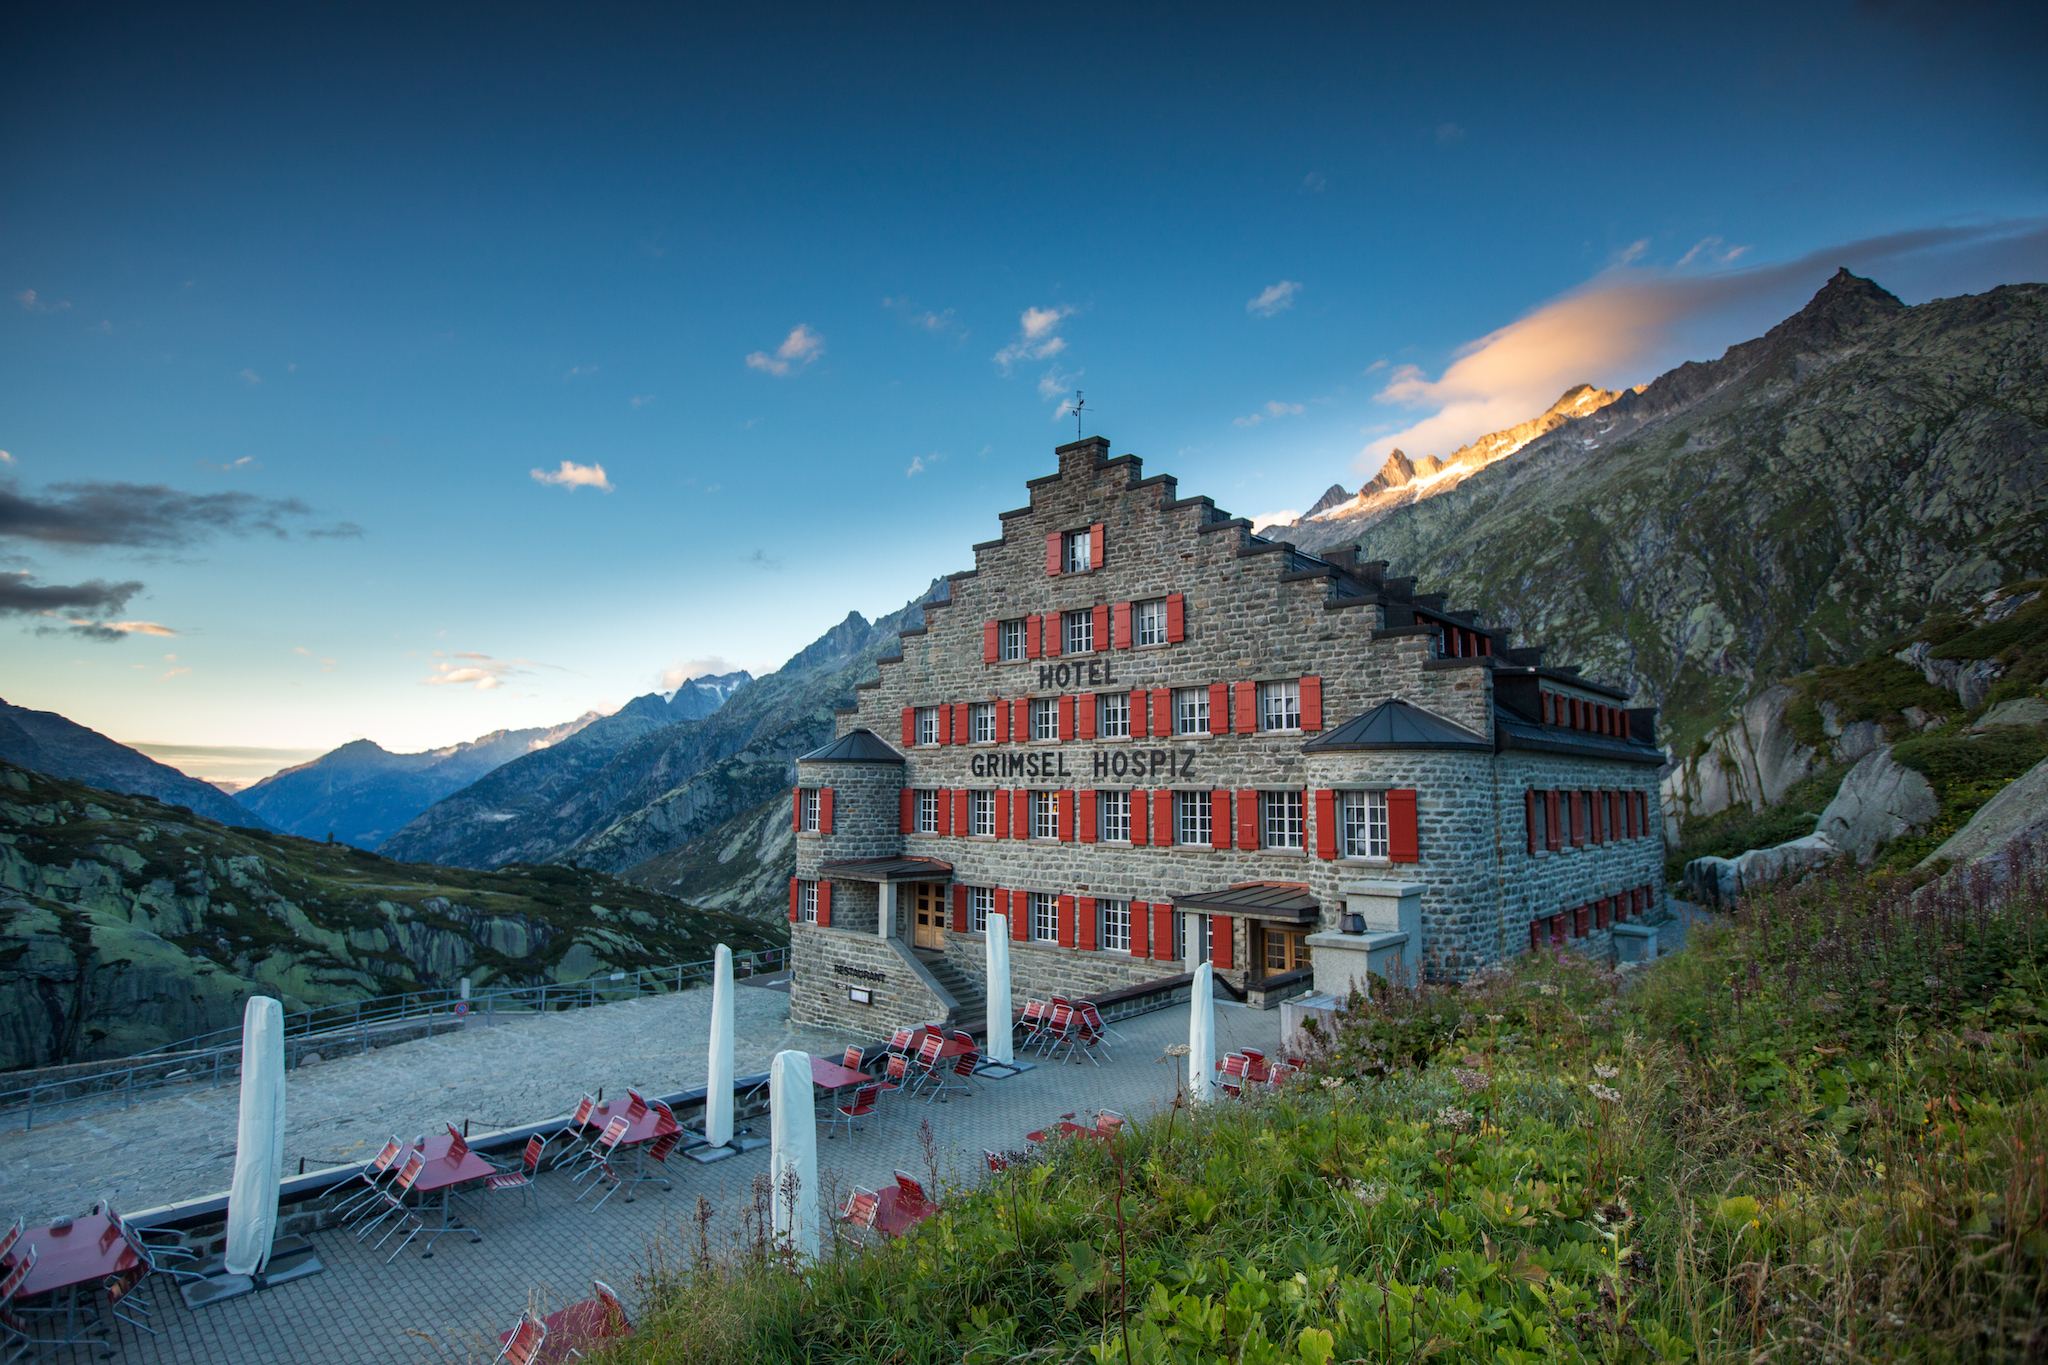 Grimsel Hospiz hotel, for Swiss staycation campaign